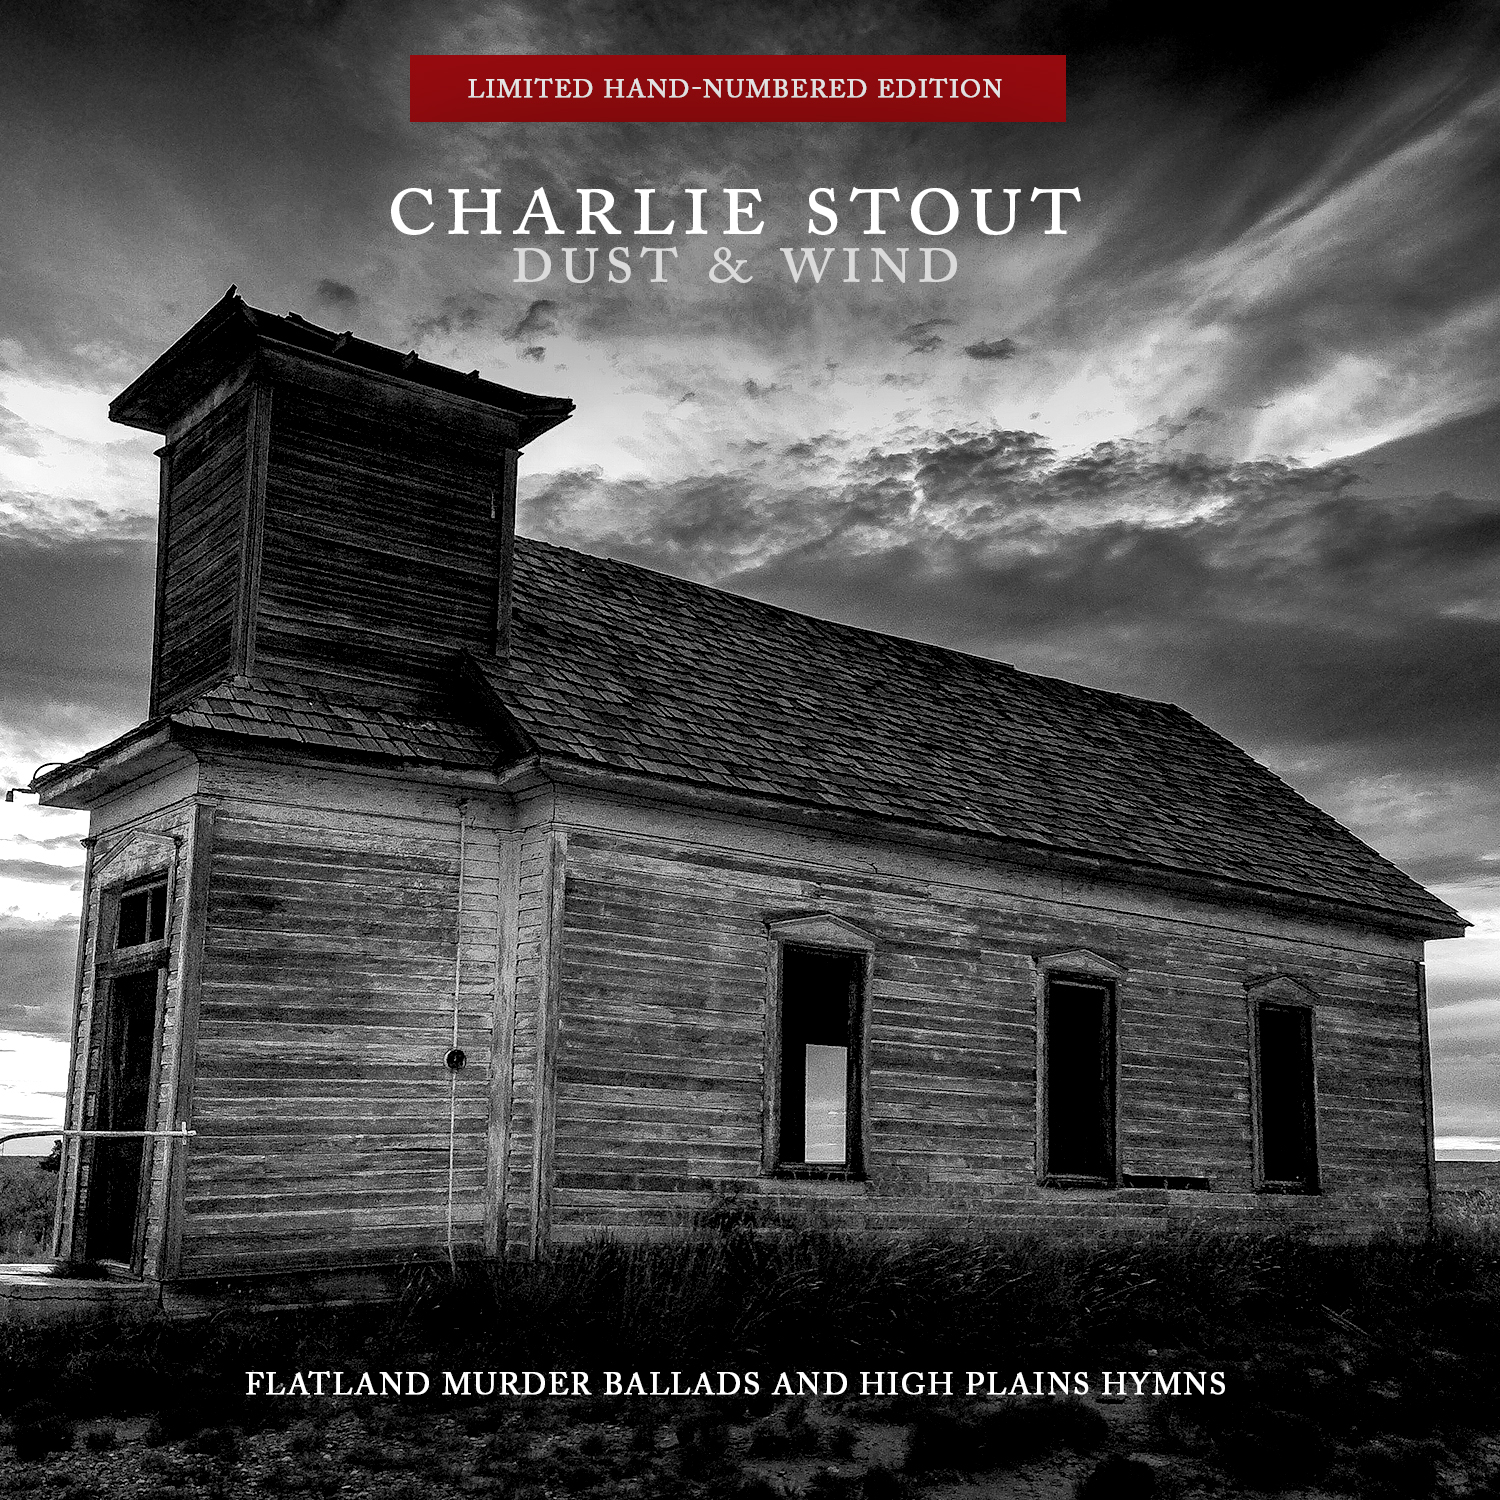 Charlie Stout - Dust & Wind- Flatland Murder Ballads And High Plains Hymns - Dust and Wind Limited Square.jpg